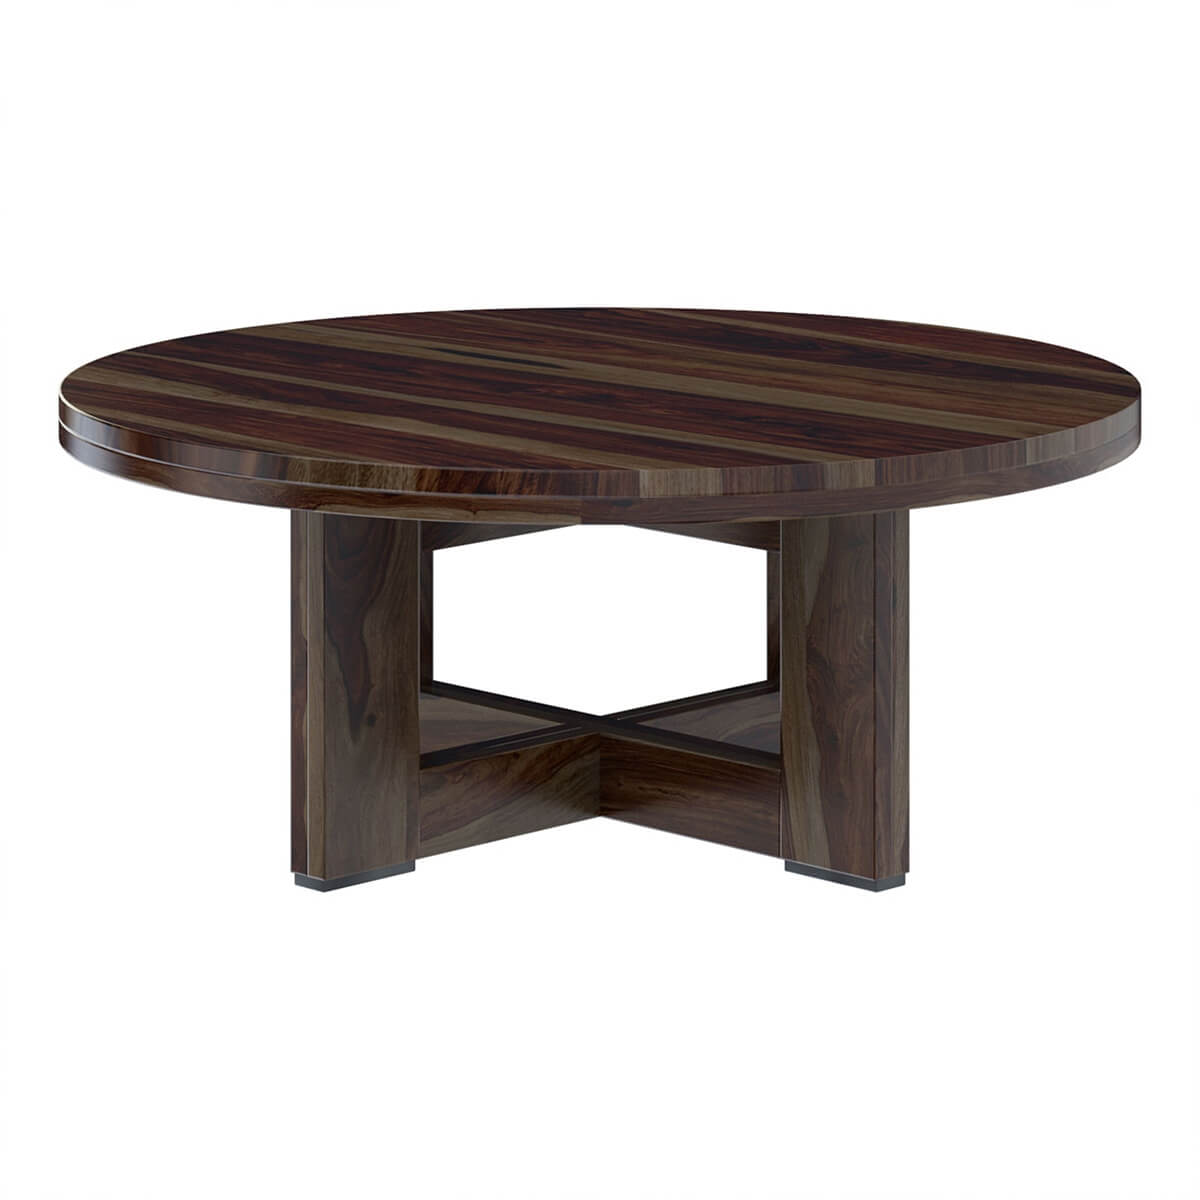 Solid Wood Curved Coffee Table: Amargosa Contemporary Rustic Solid Wood Round Coffee Table